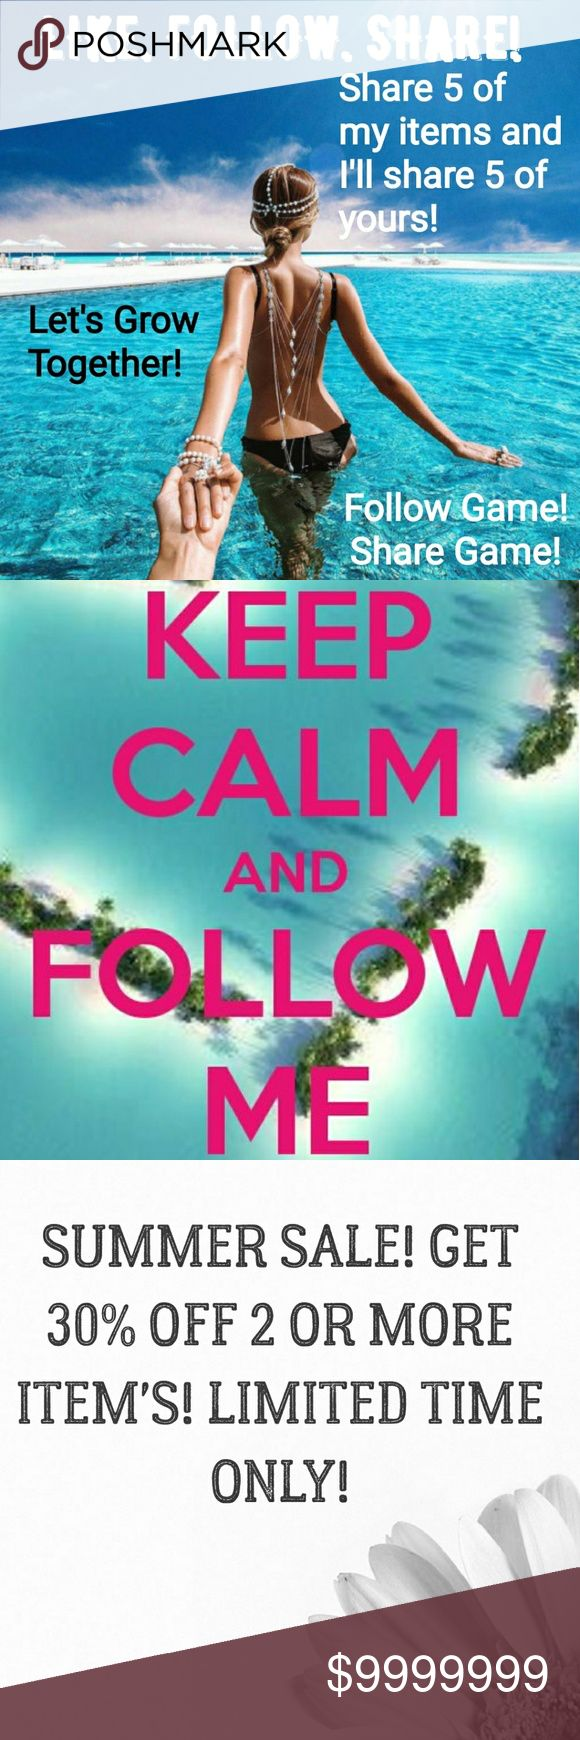 🔆 Share! Share! Share! WANT MORE FOLLOWERS? 🔆 SUMMER FOLLOW GAME! SHARE GAME!  ✔Follow me! Don't forget to follow me before sharing! ✔Follow everyone who's liked this post! ✔Share this post! ✔Share 5 of my listings and I will share 5 of yours! ✔Check back often for new followers!  Tags: camo country girl southern girl western southwestern turquoise share game pistol shotgun shell jewelry silver earrings gift follow game buckle miss me justin boots ariat cowgirl aero aeropostale boot cut…